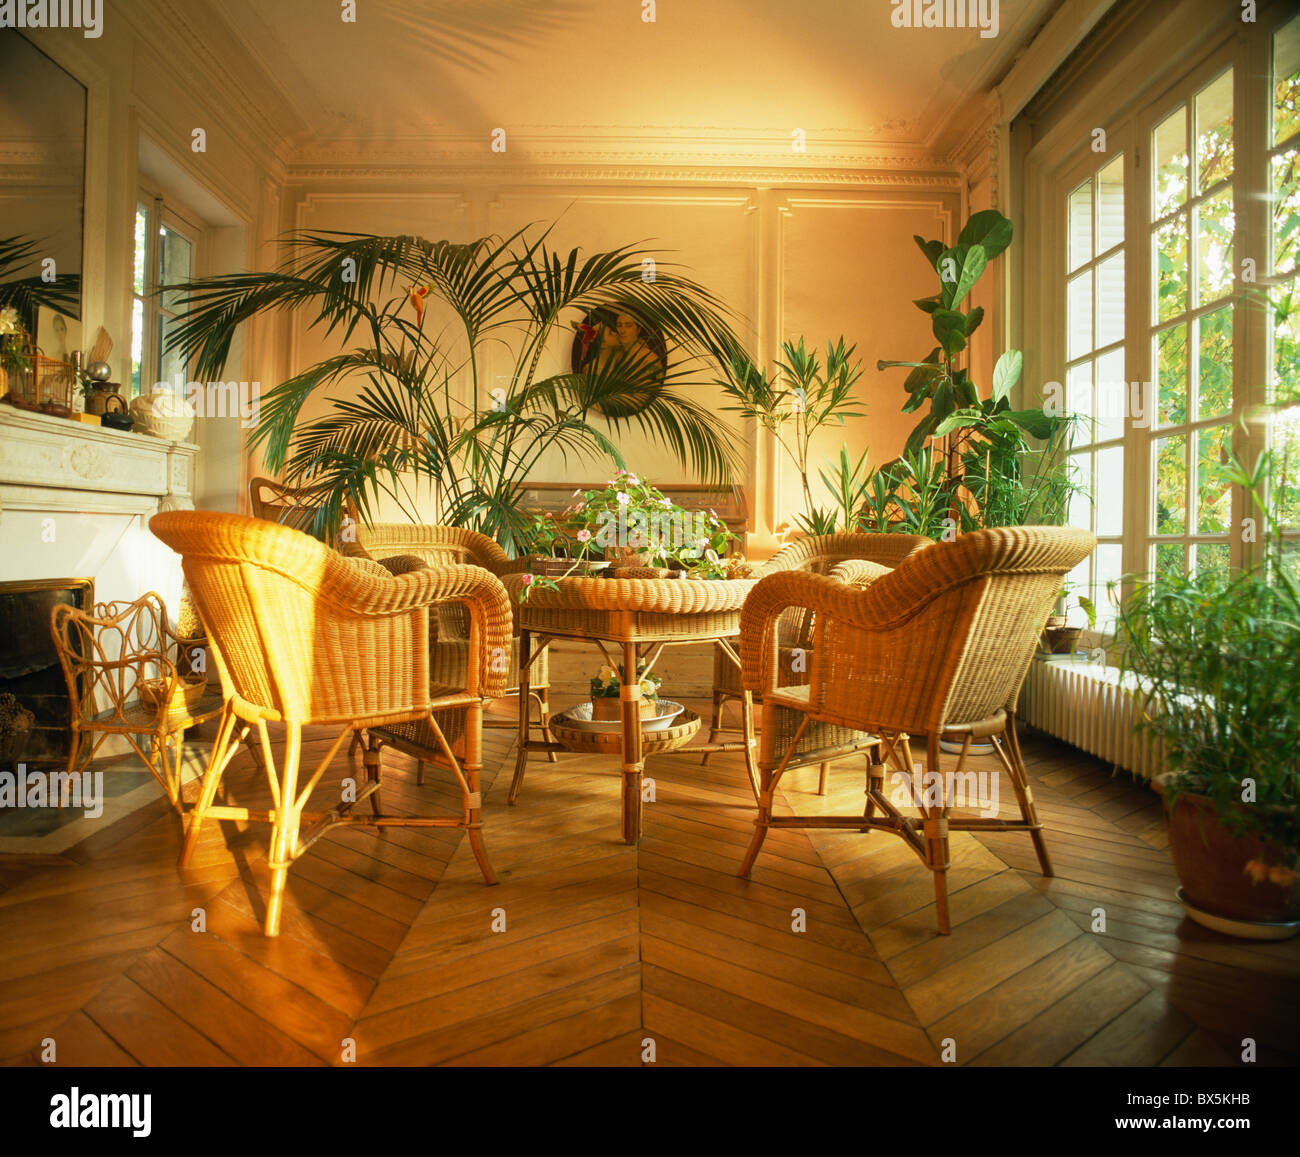 cane chairs and lush green houseplants in french townhouse dining cane chairs and lush green houseplants in french townhouse dining room with wooden parquet flooring